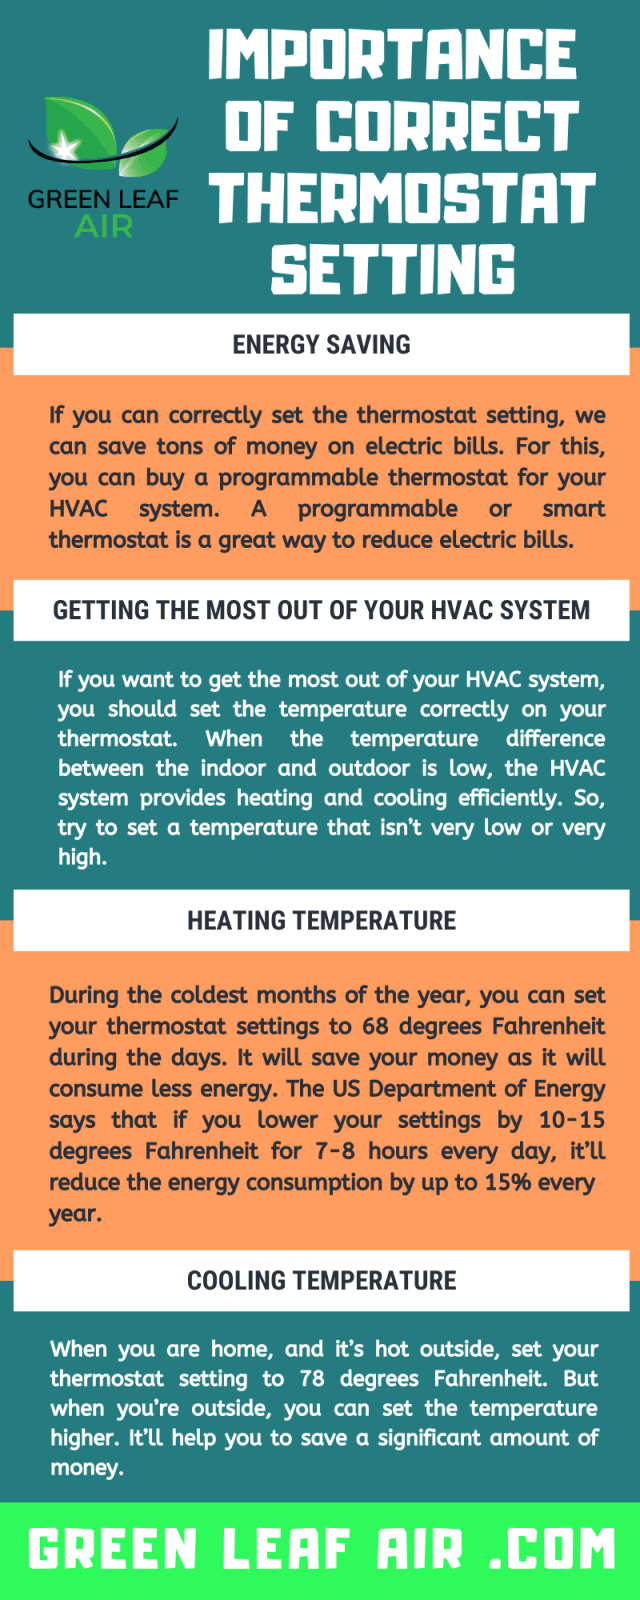 Importance of Correct Thermostat Setting